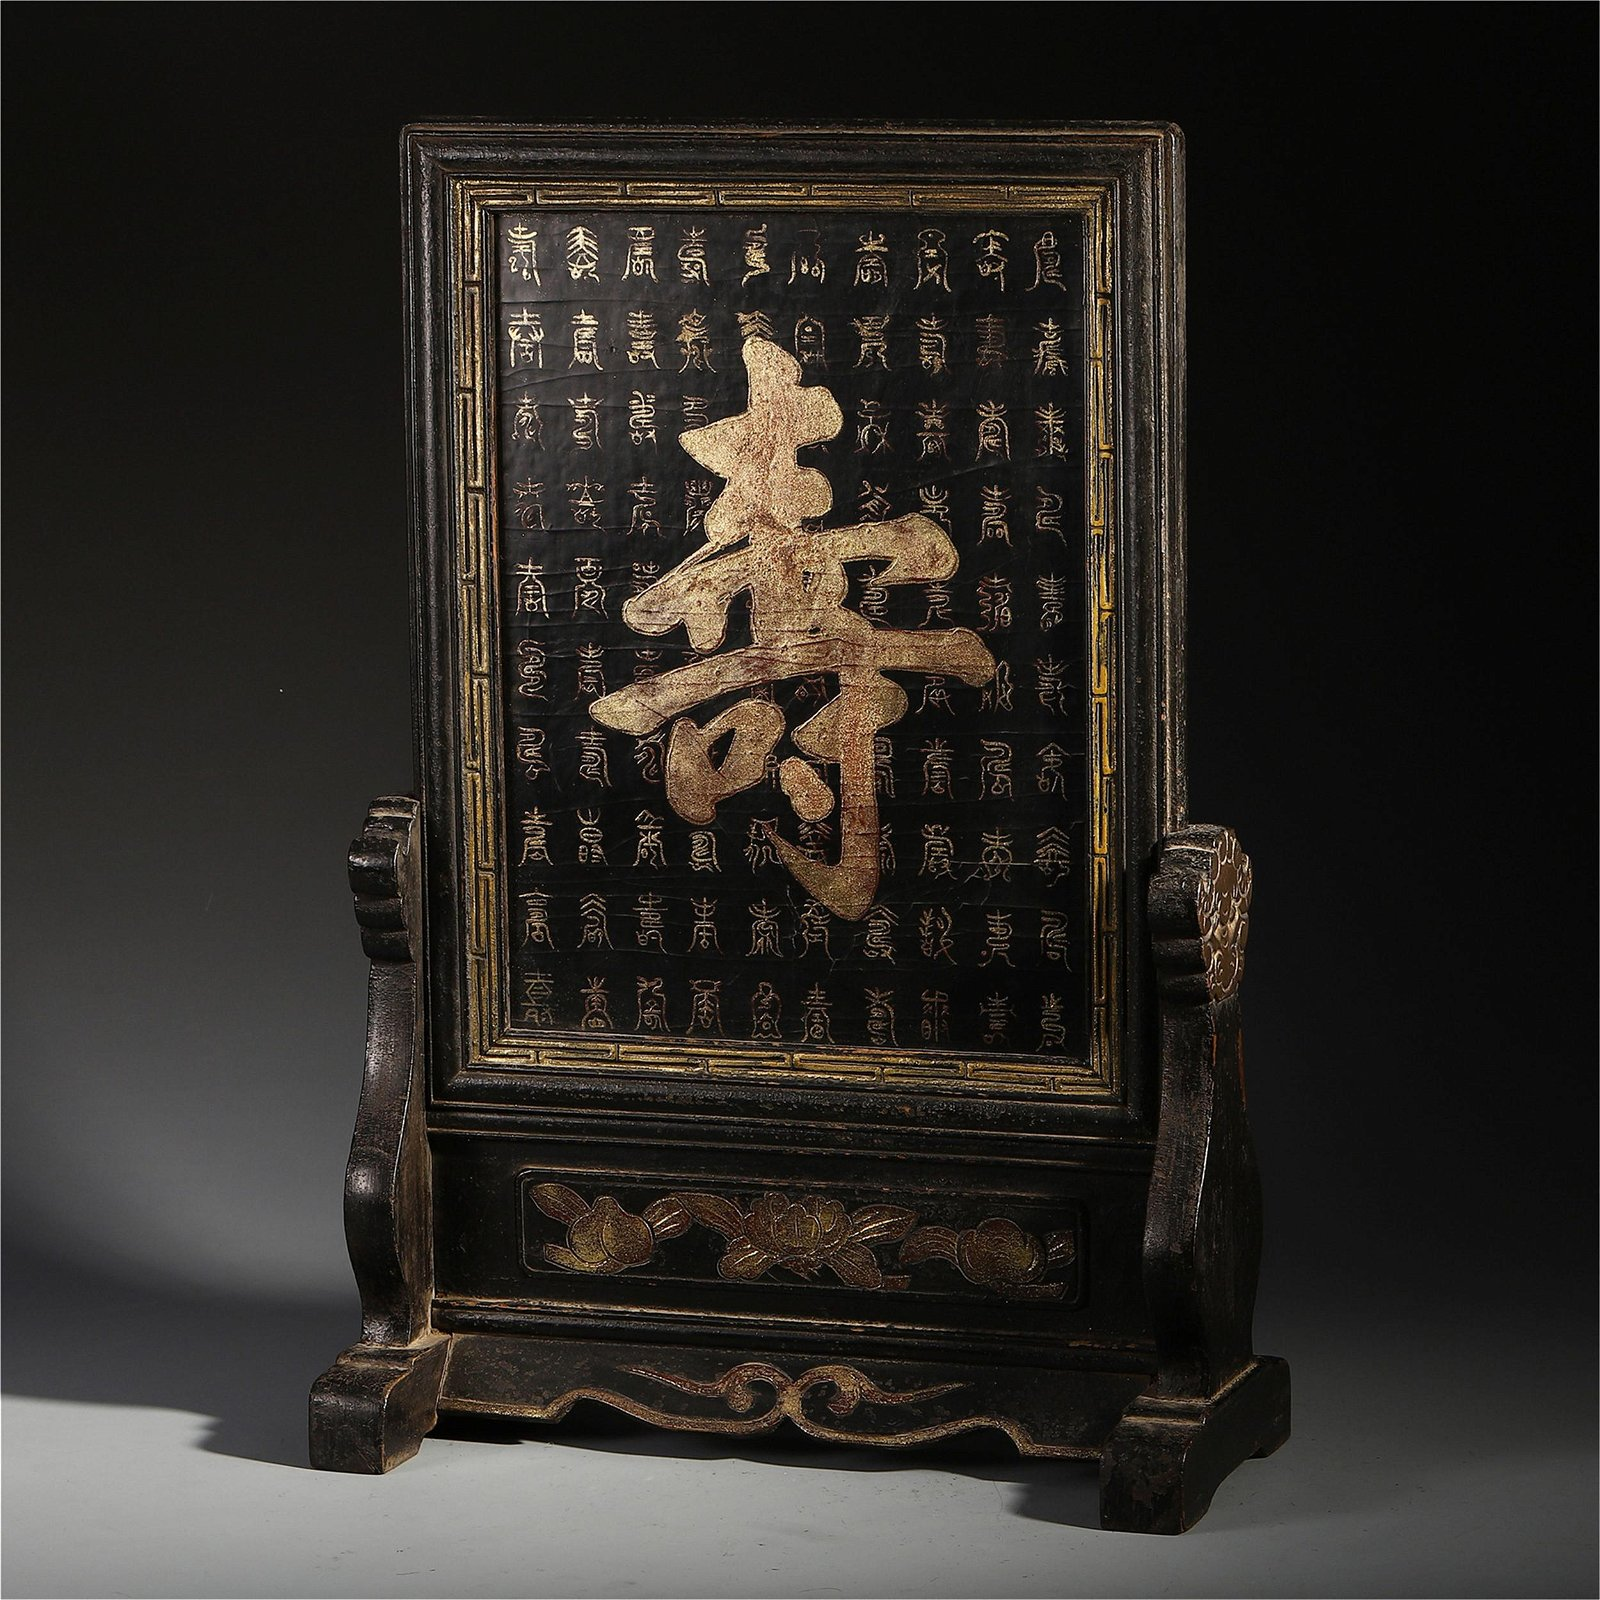 CHINESE GOLD PAINTED LACQUER ROSEWOOD FLOOR SCREEN